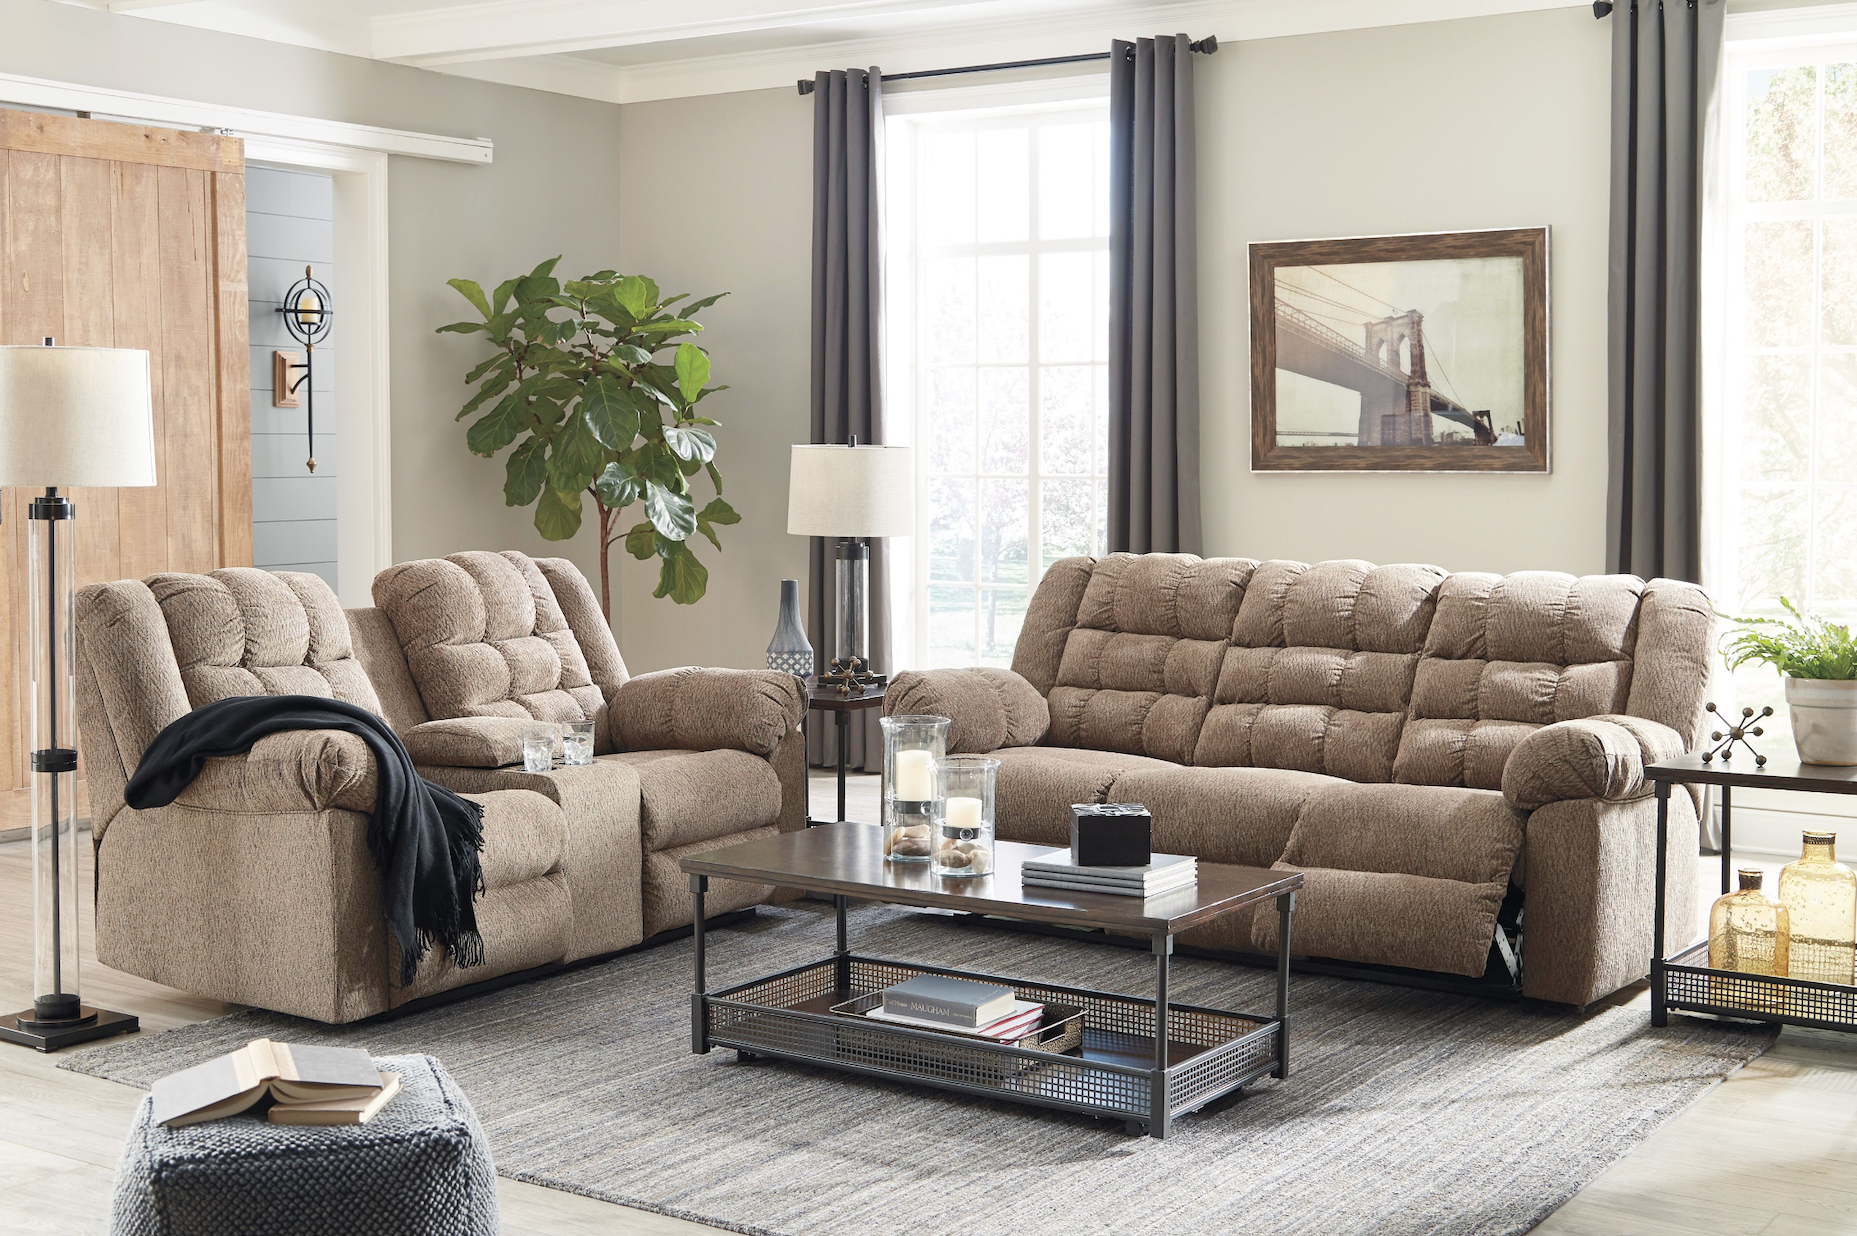 Fabulous Ashley Workhorse Reclining Sofa Living Room Sets Machost Co Dining Chair Design Ideas Machostcouk